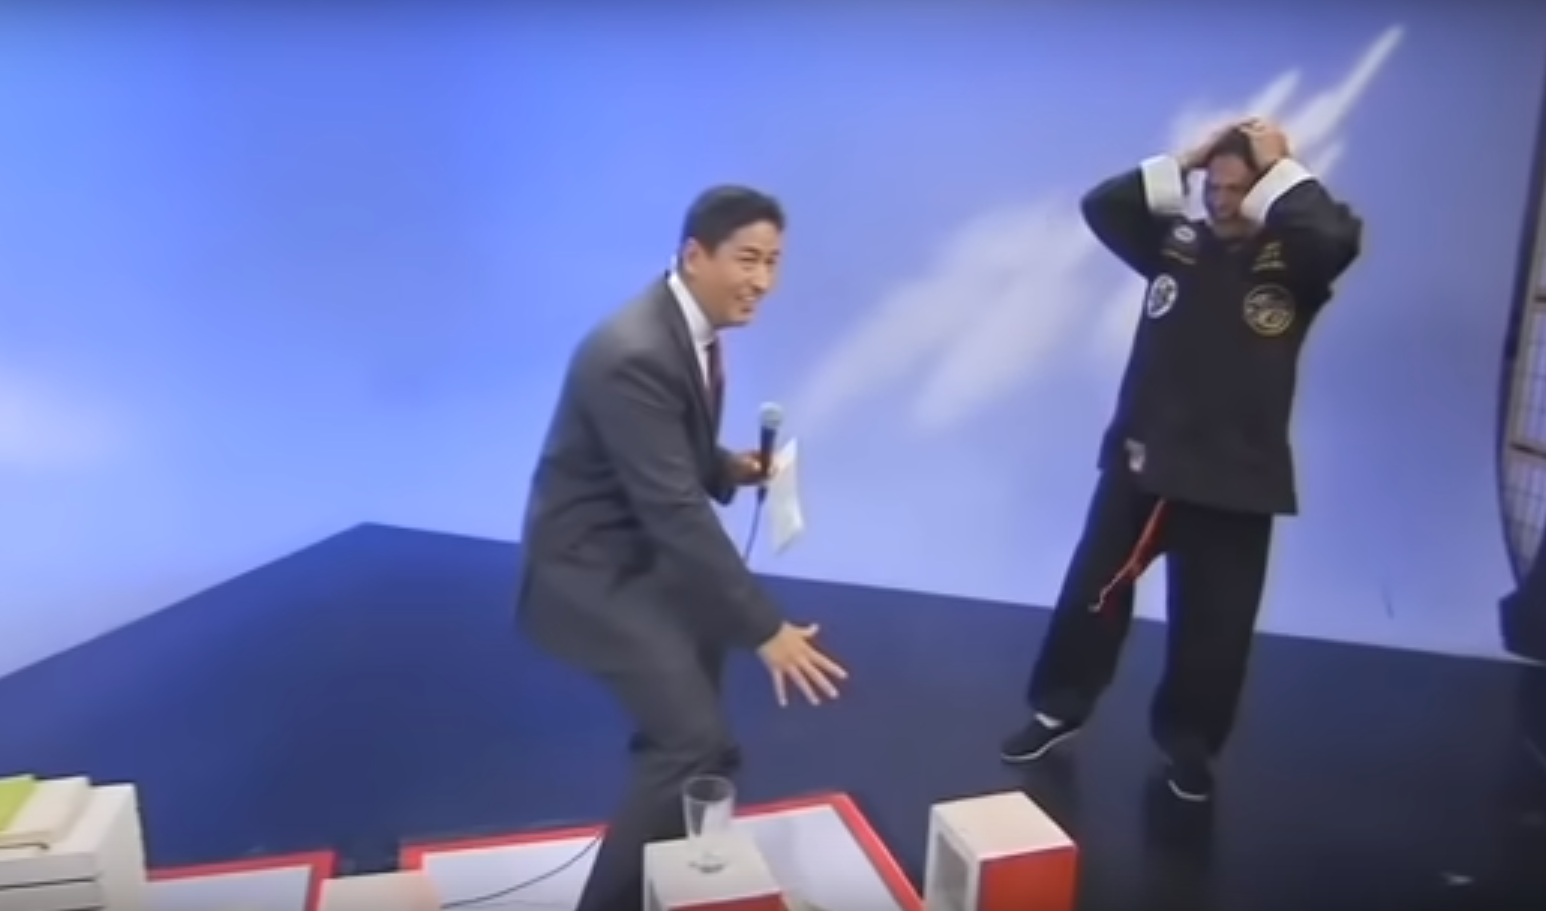 news anchor accidentally reveals fake Kung Fu trick on TV